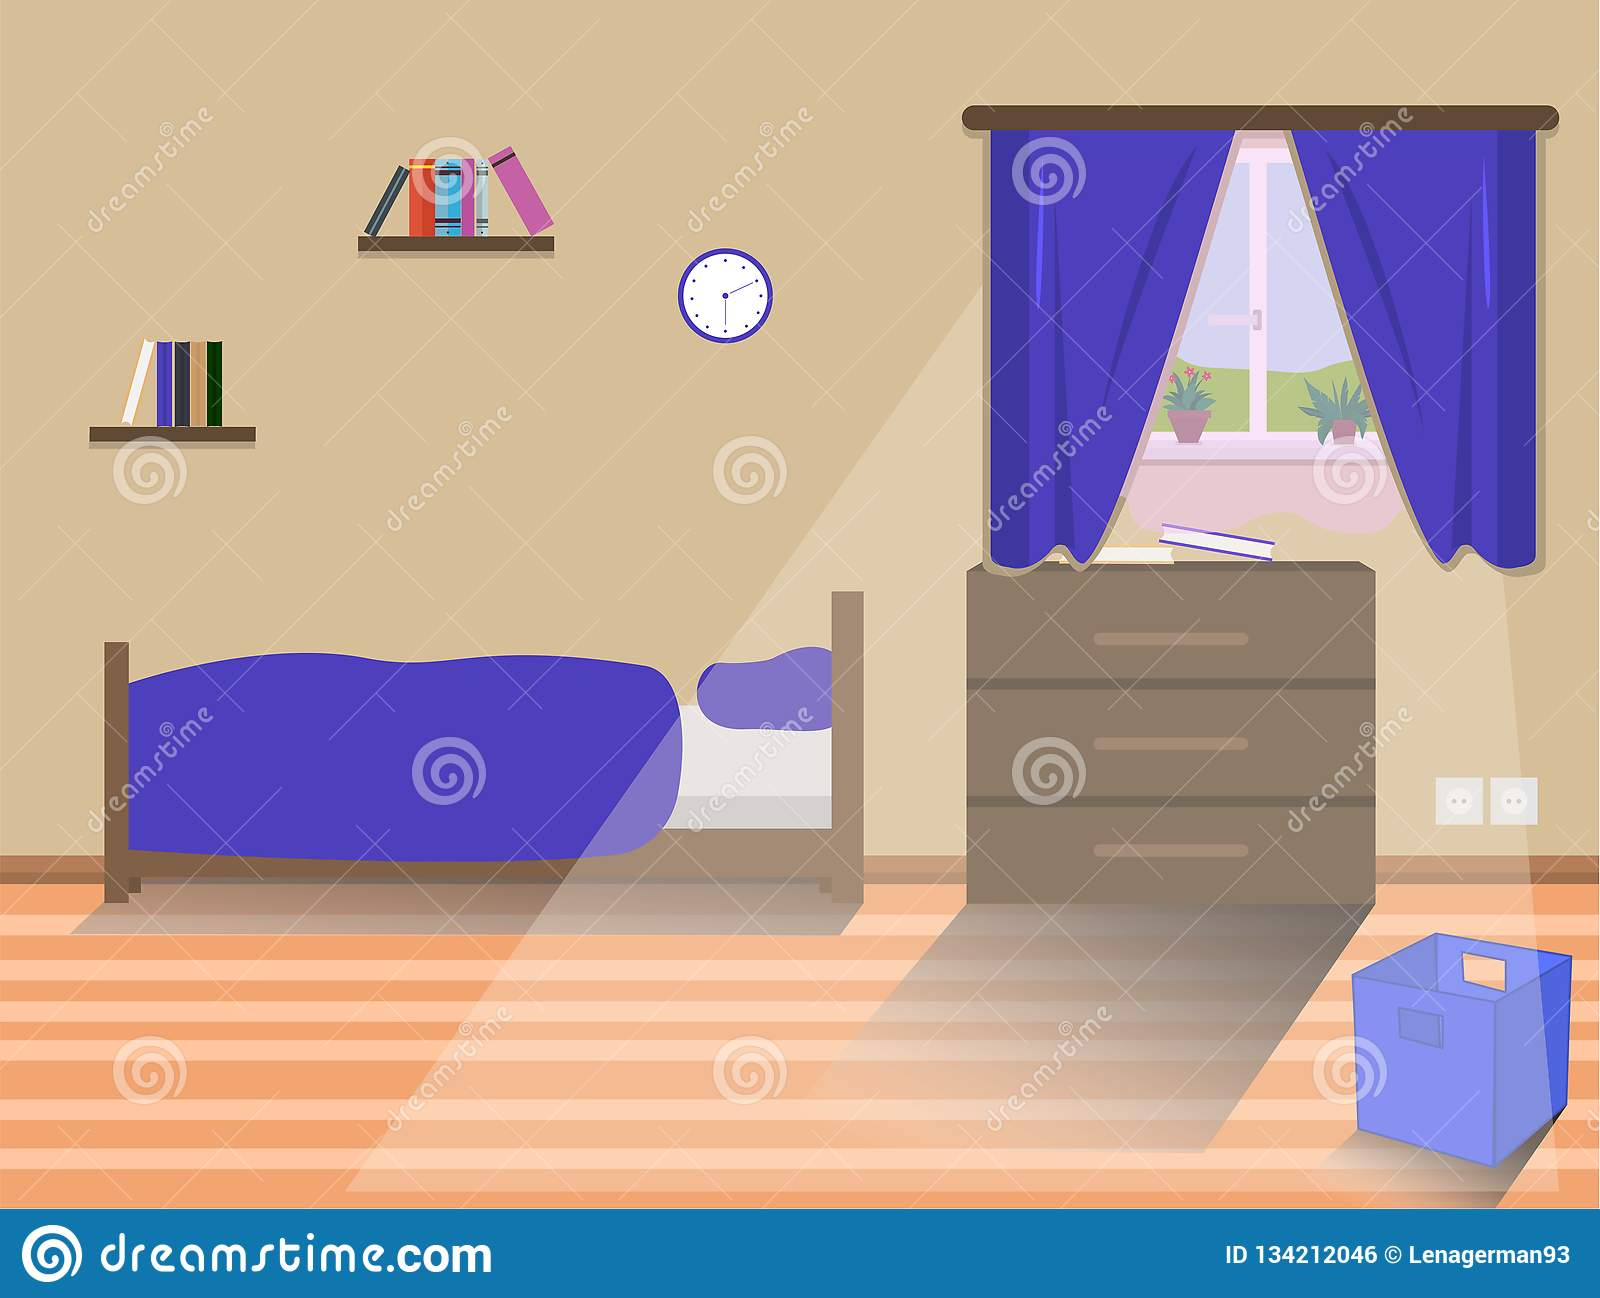 Kids Bedroom Interior With Bed Stock Illustration - Illustration of ...